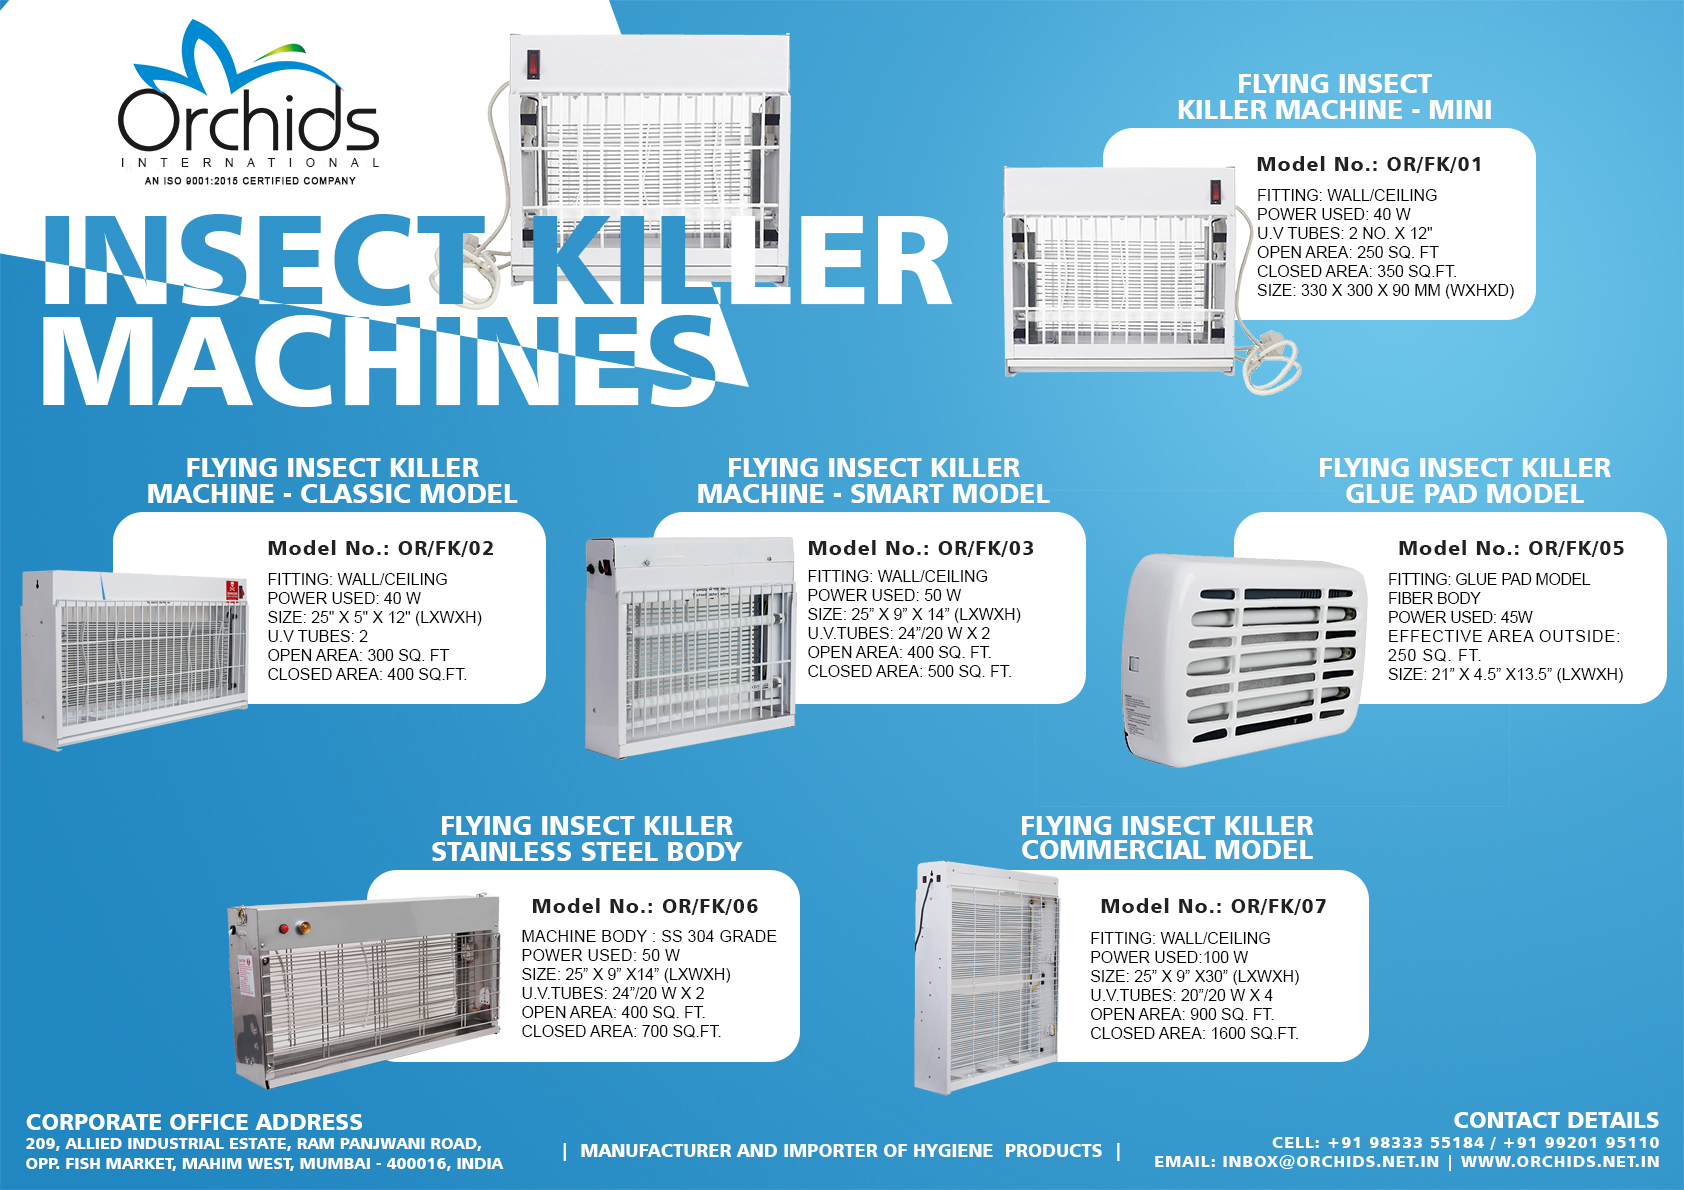 Flying Insect Killer Commercial Model – Orchids International